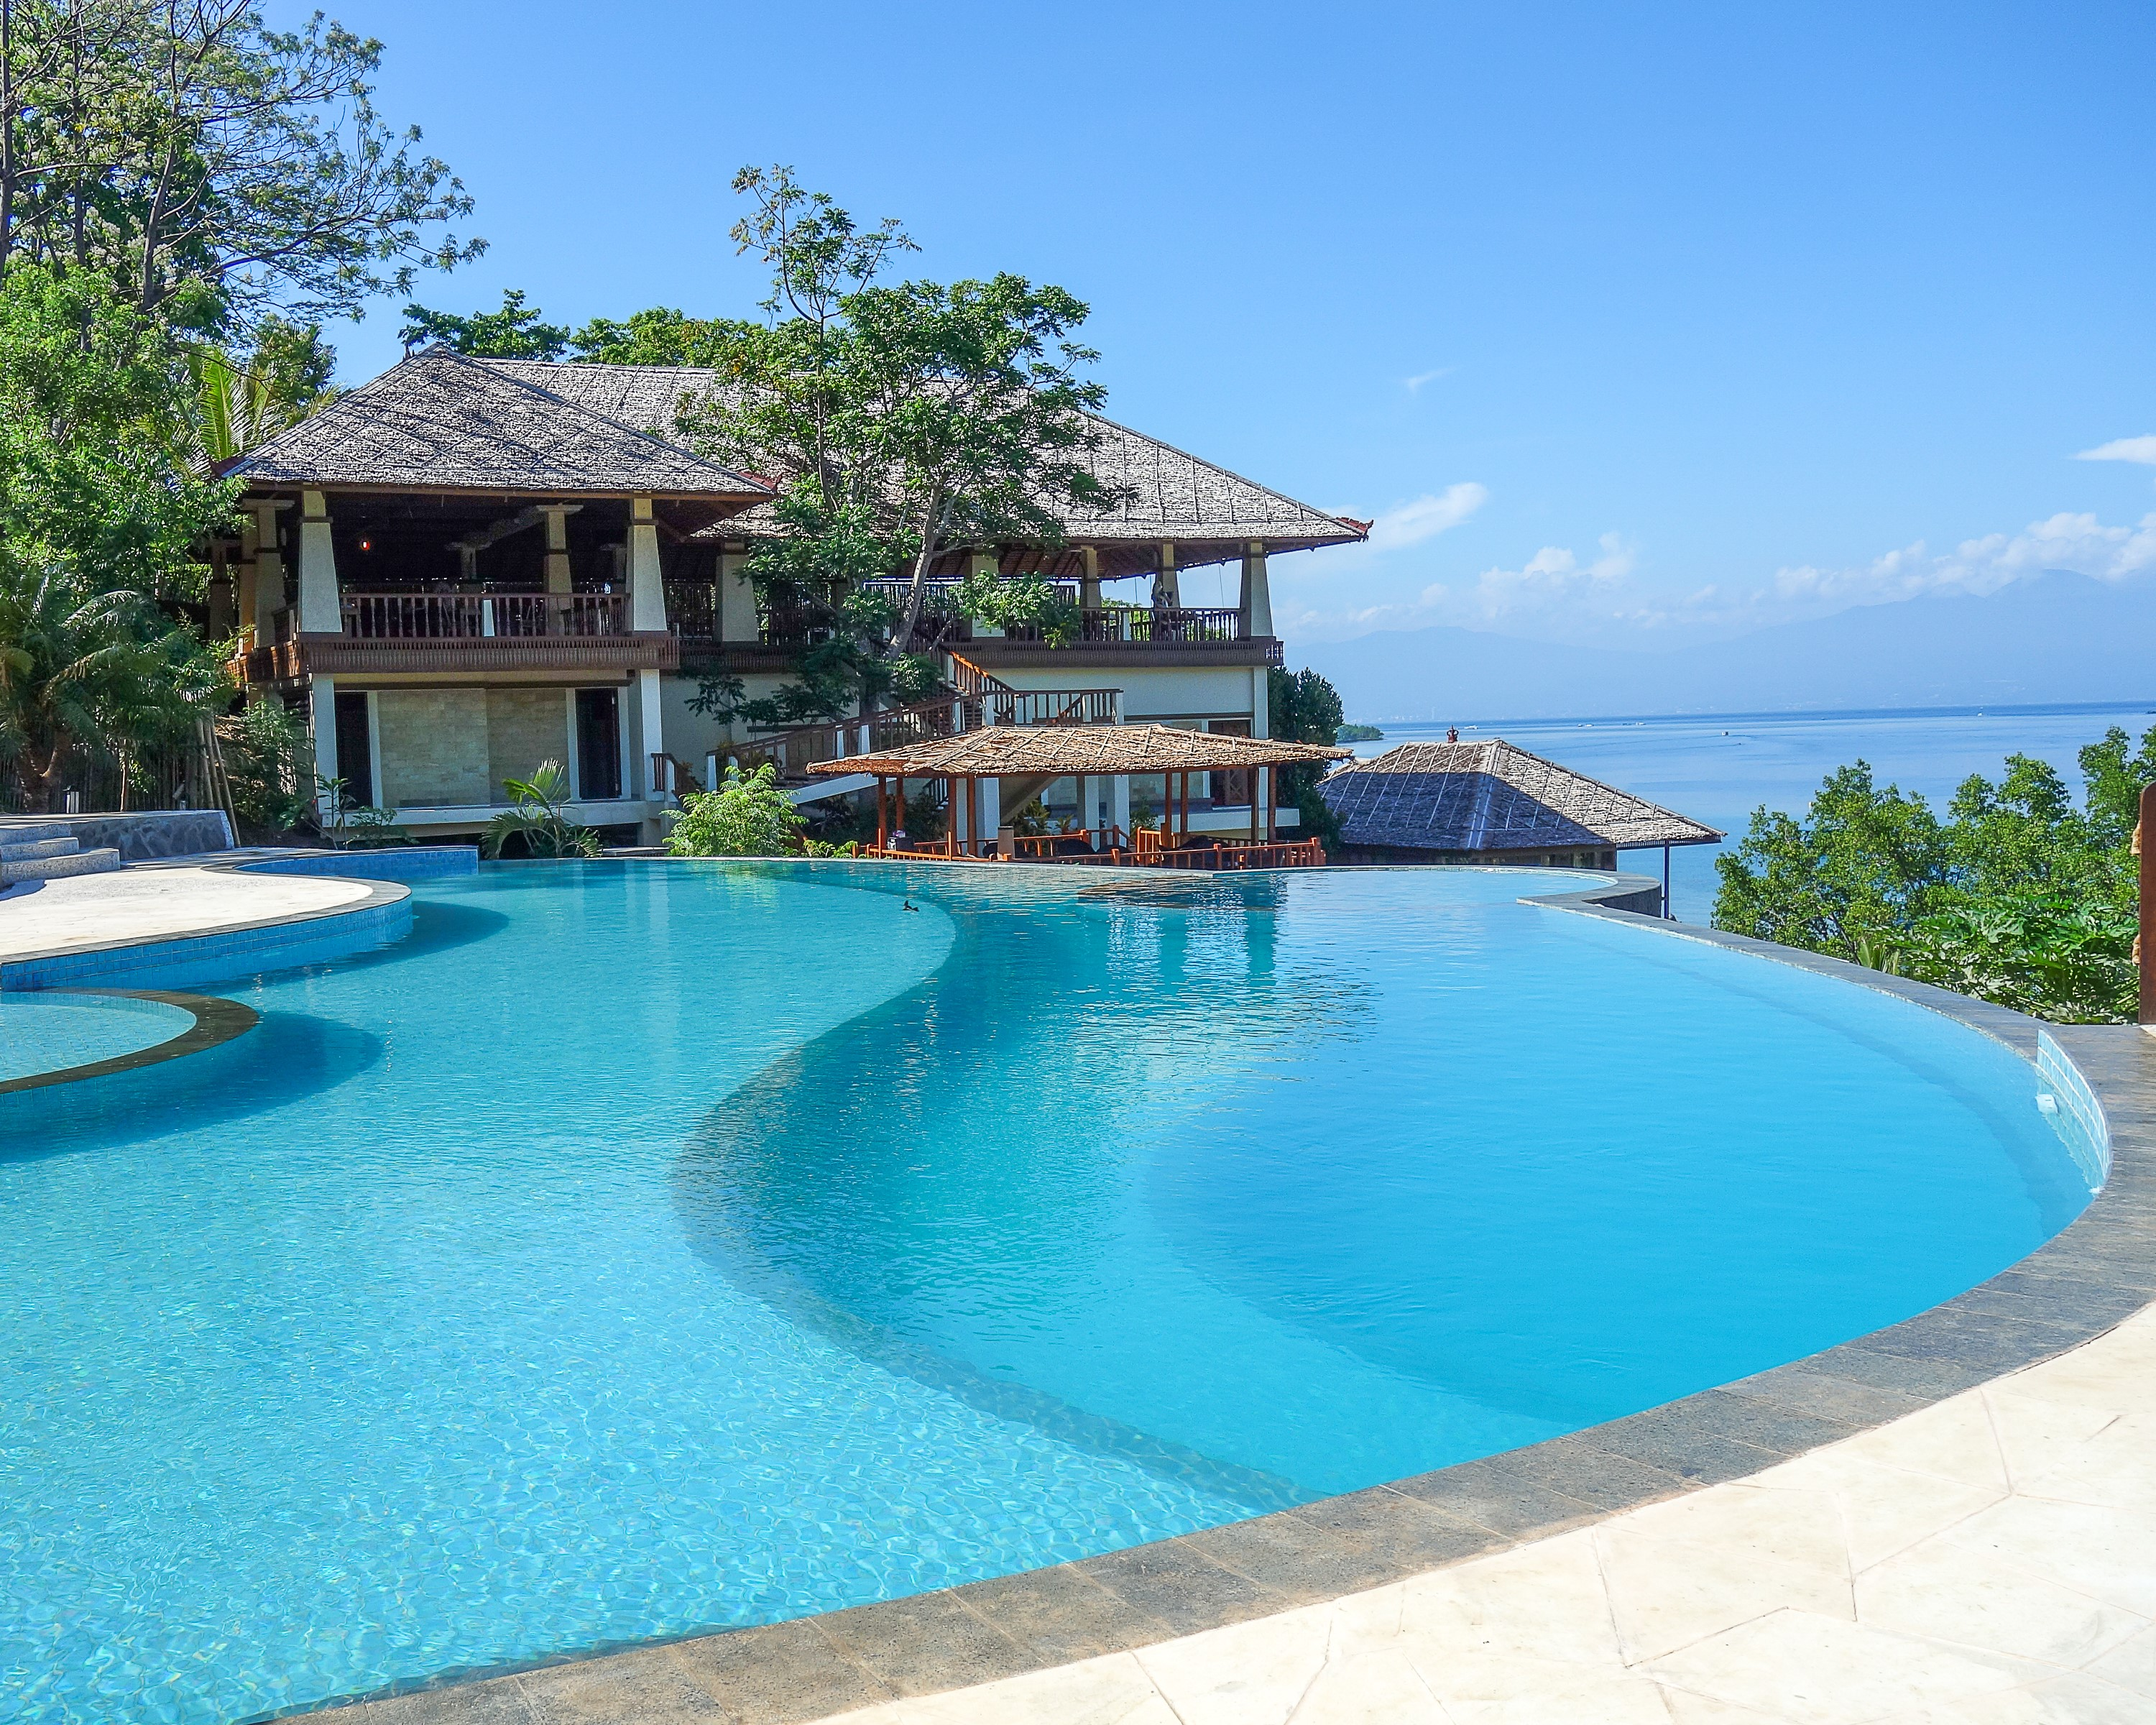 Scuba travel announce exclusive deal for new indonesian - Bunaken island dive resort ...